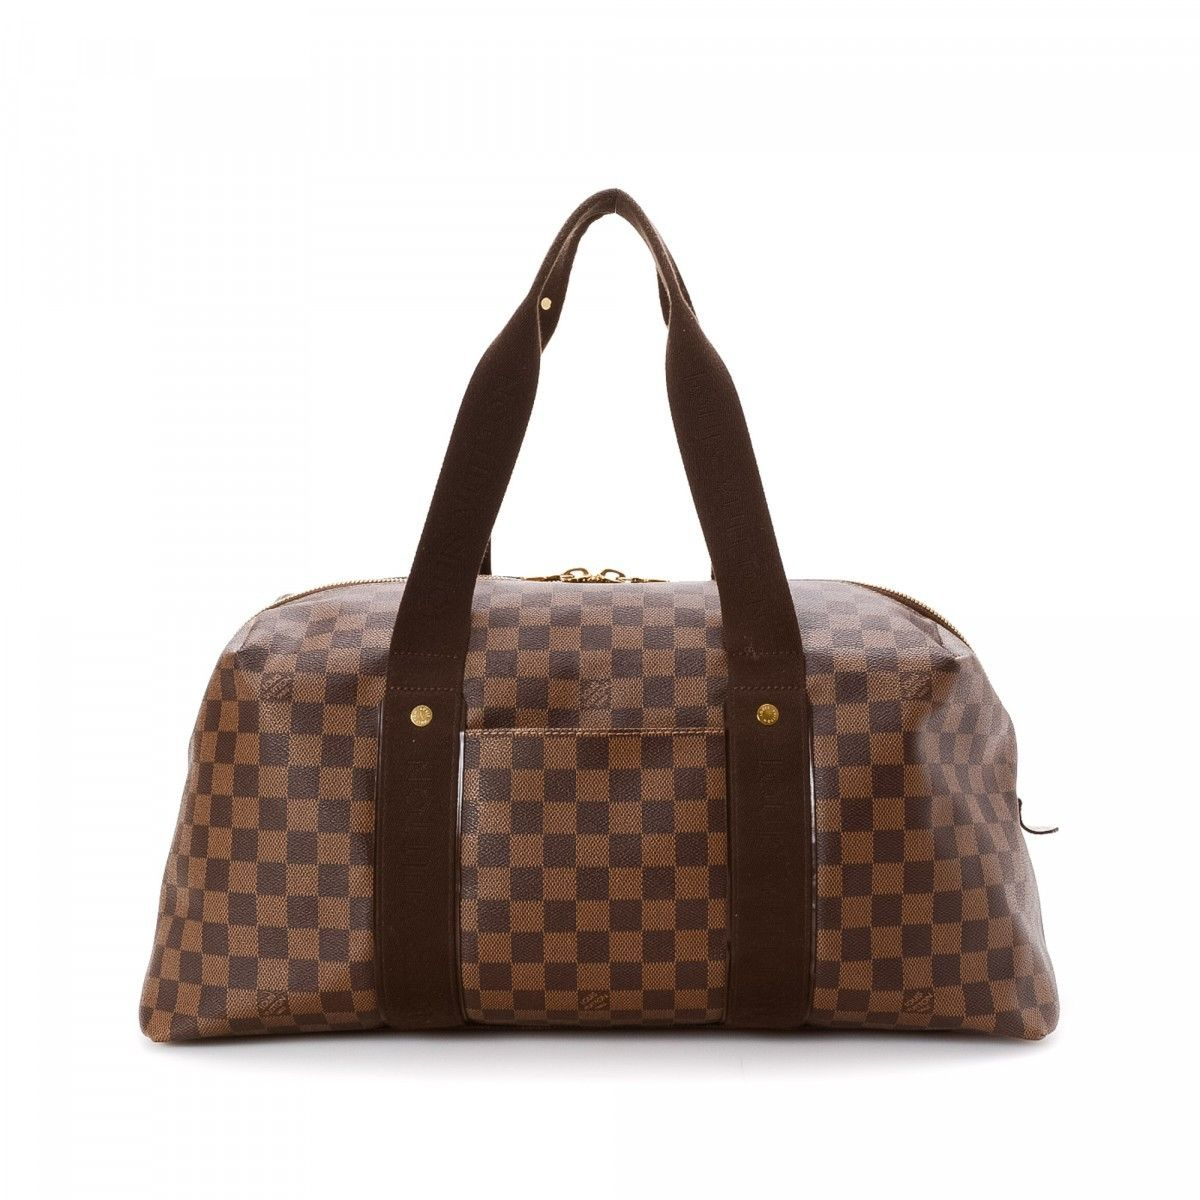 louis vuitton overnight bag. louis vuitton weekender beaubourg gm damier ebene coated canvas - lxrandco pre-owned luxury vintage overnight bag